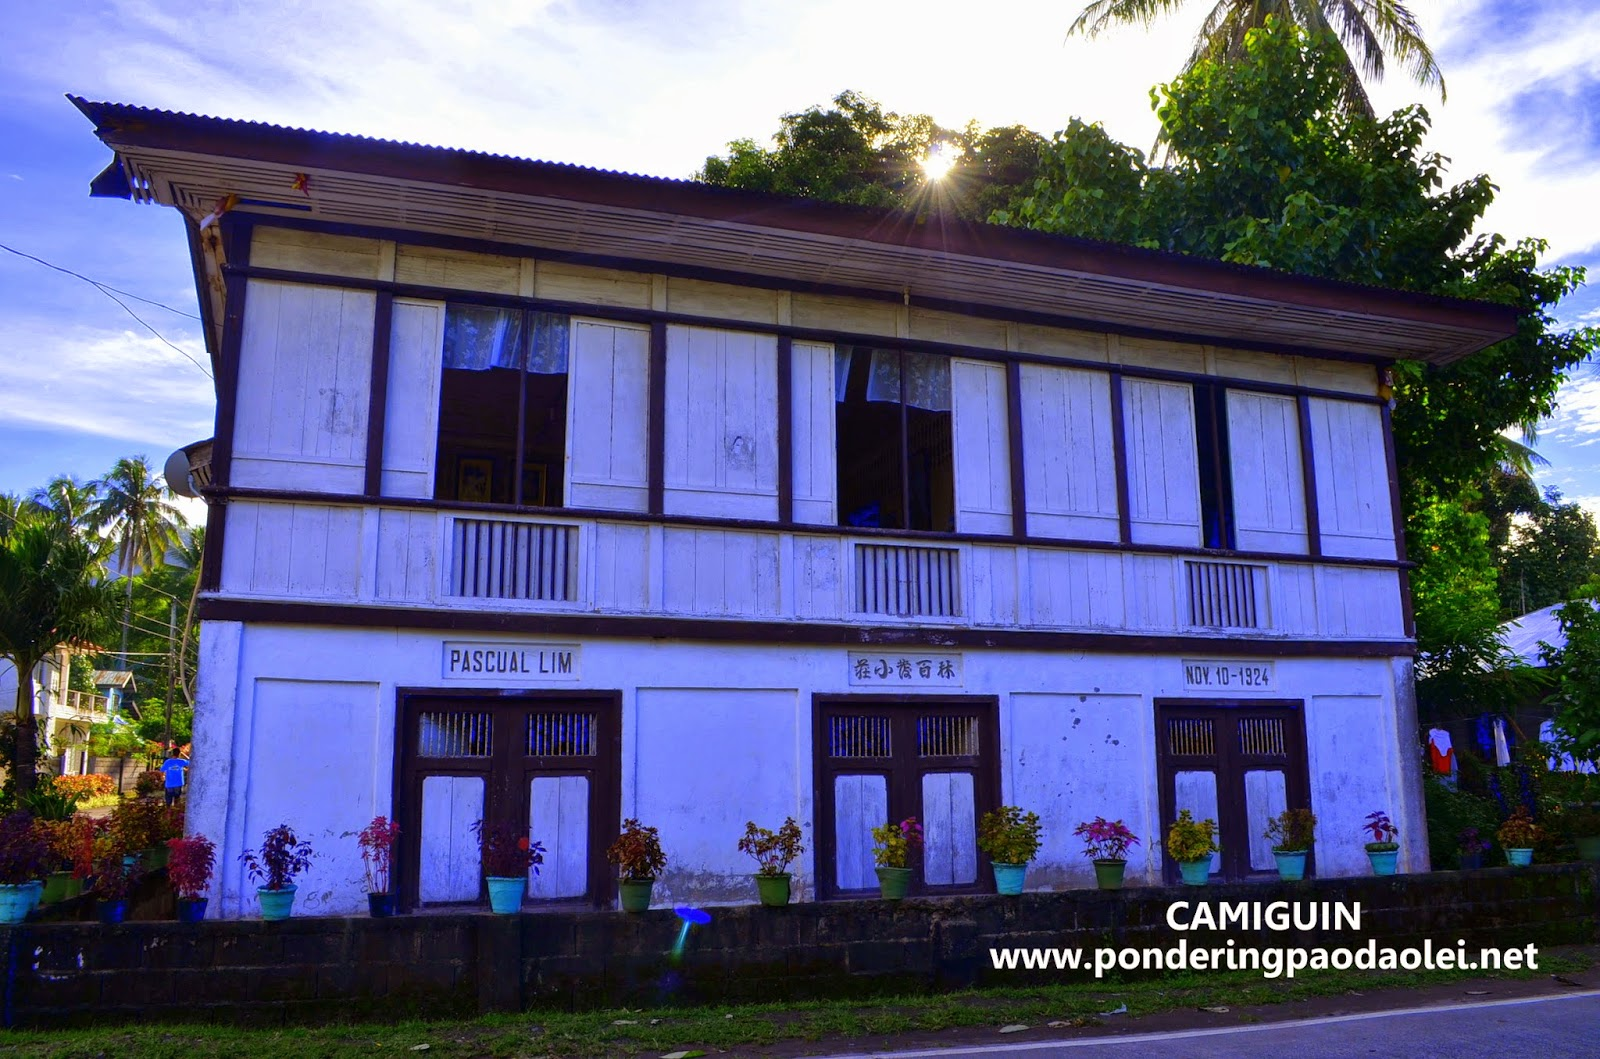 Camiguin's Ancestral Houses